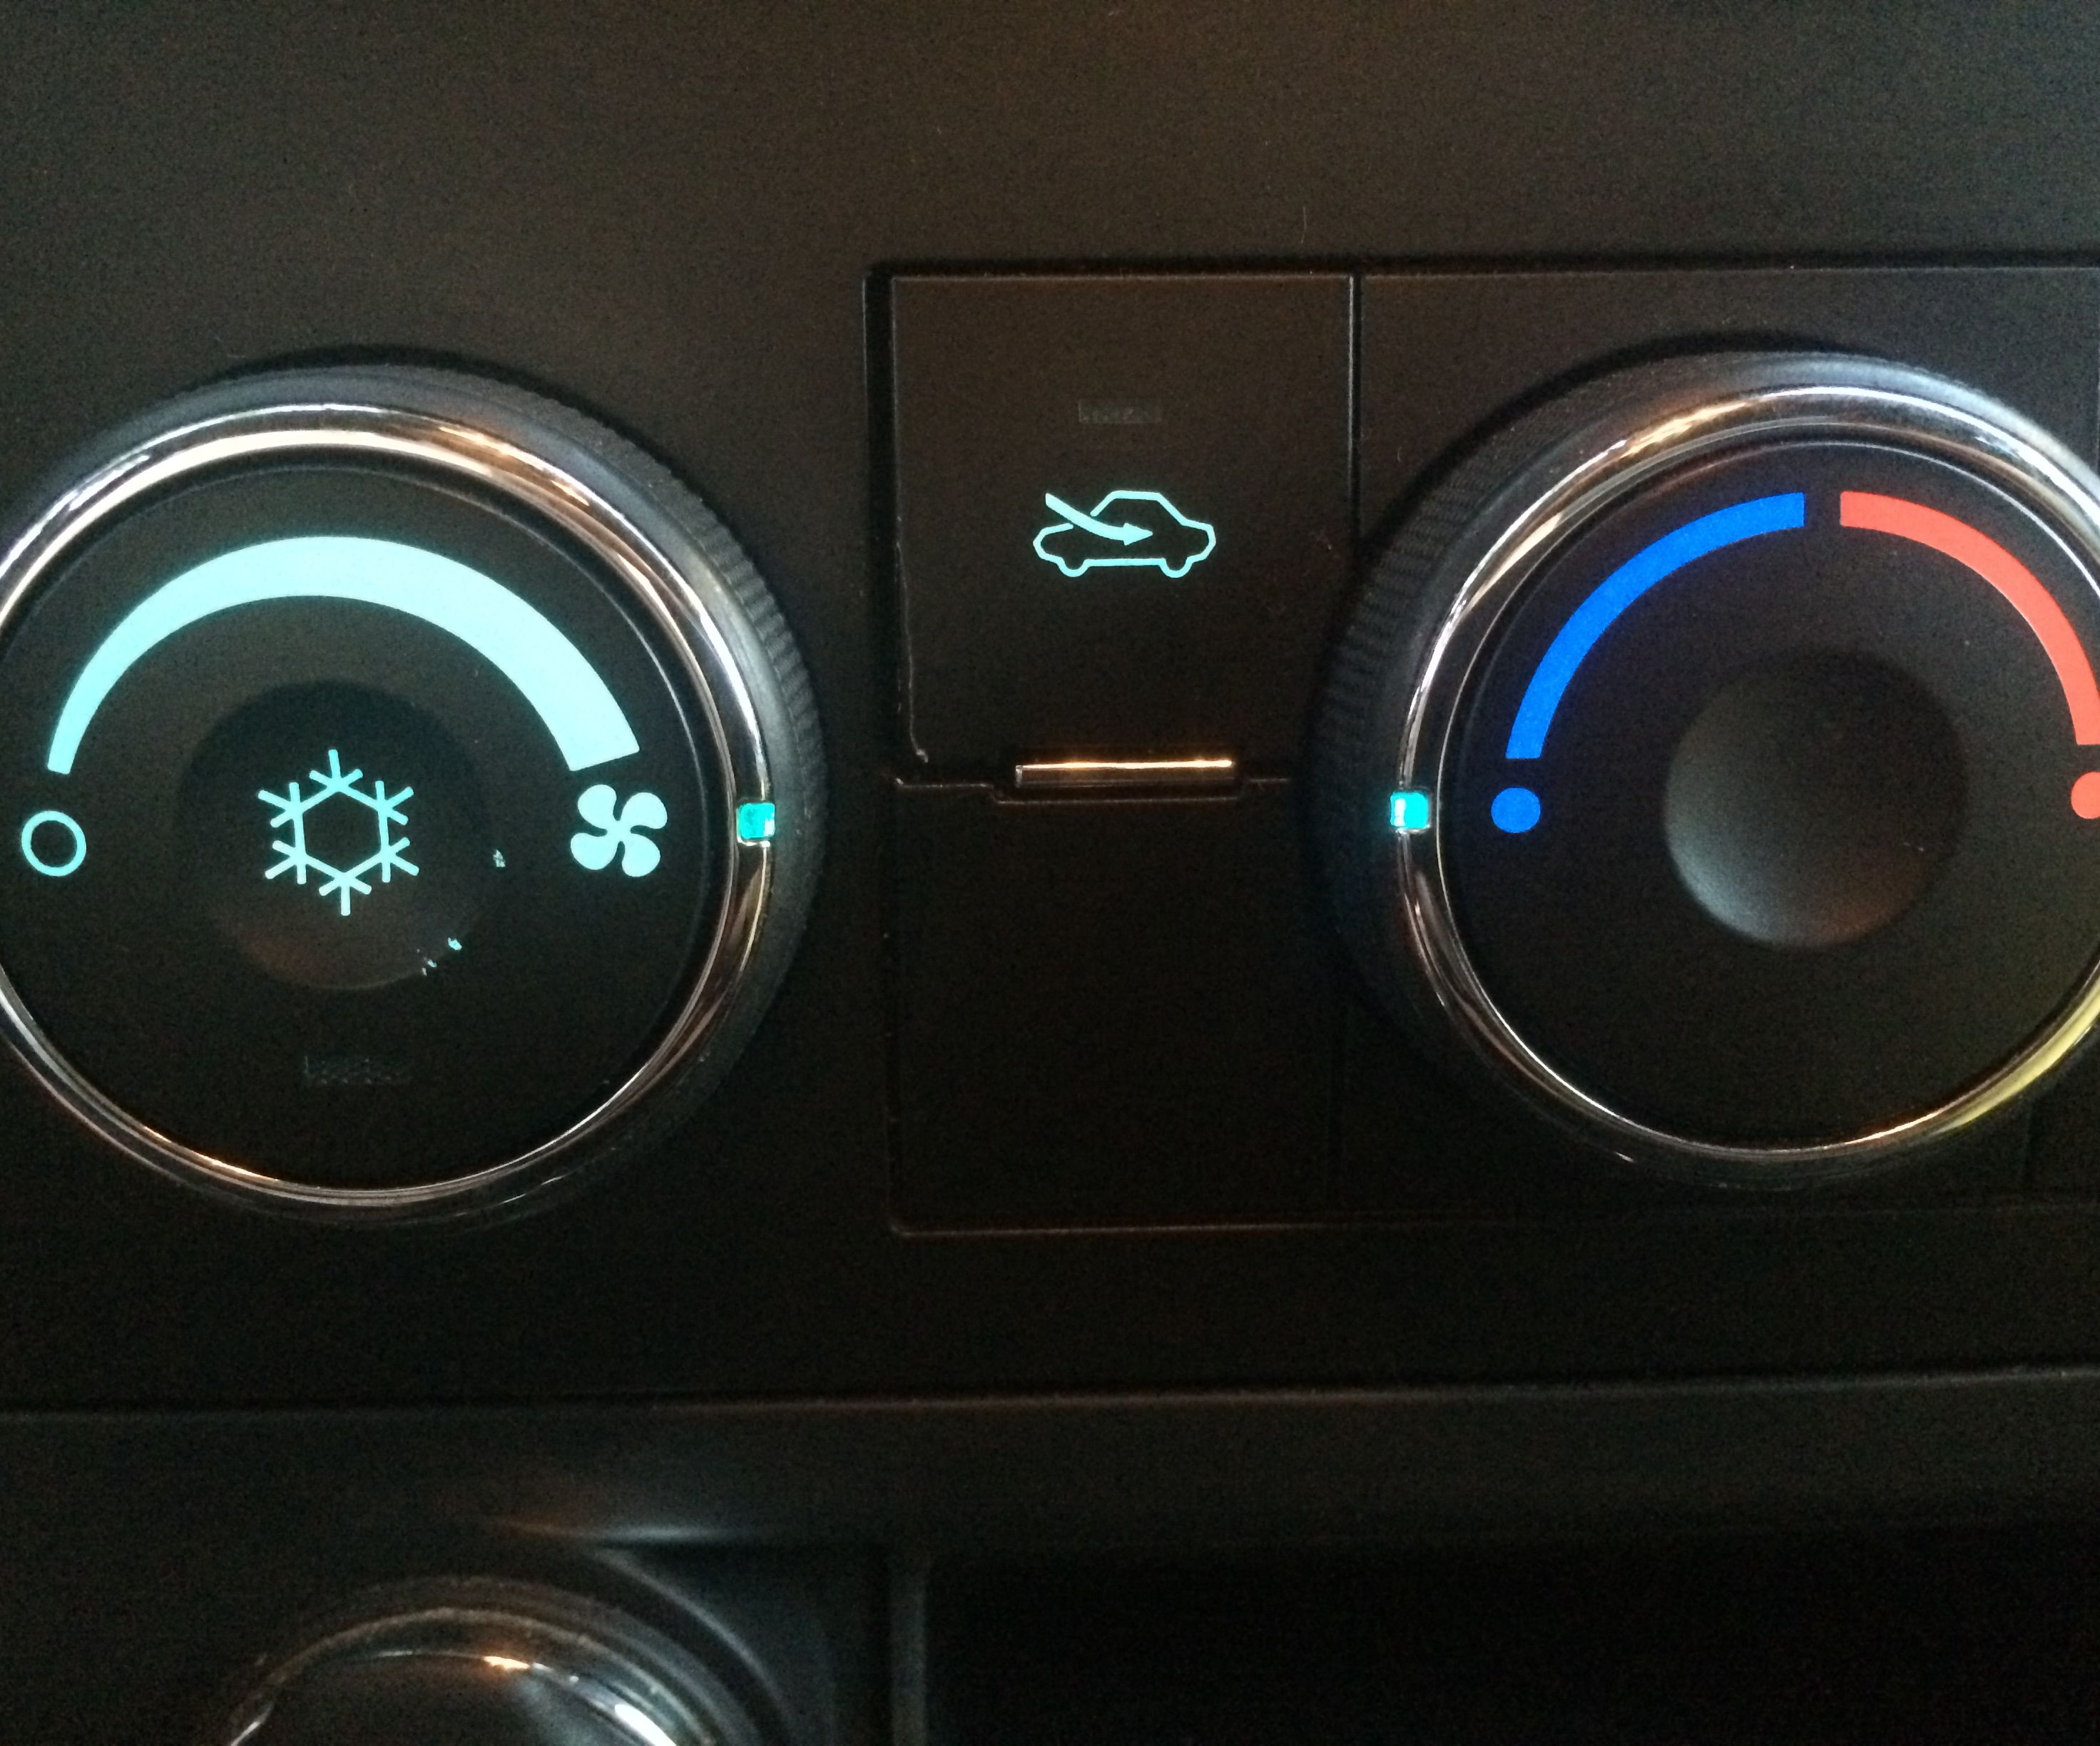 Recharge your vehicle A/C